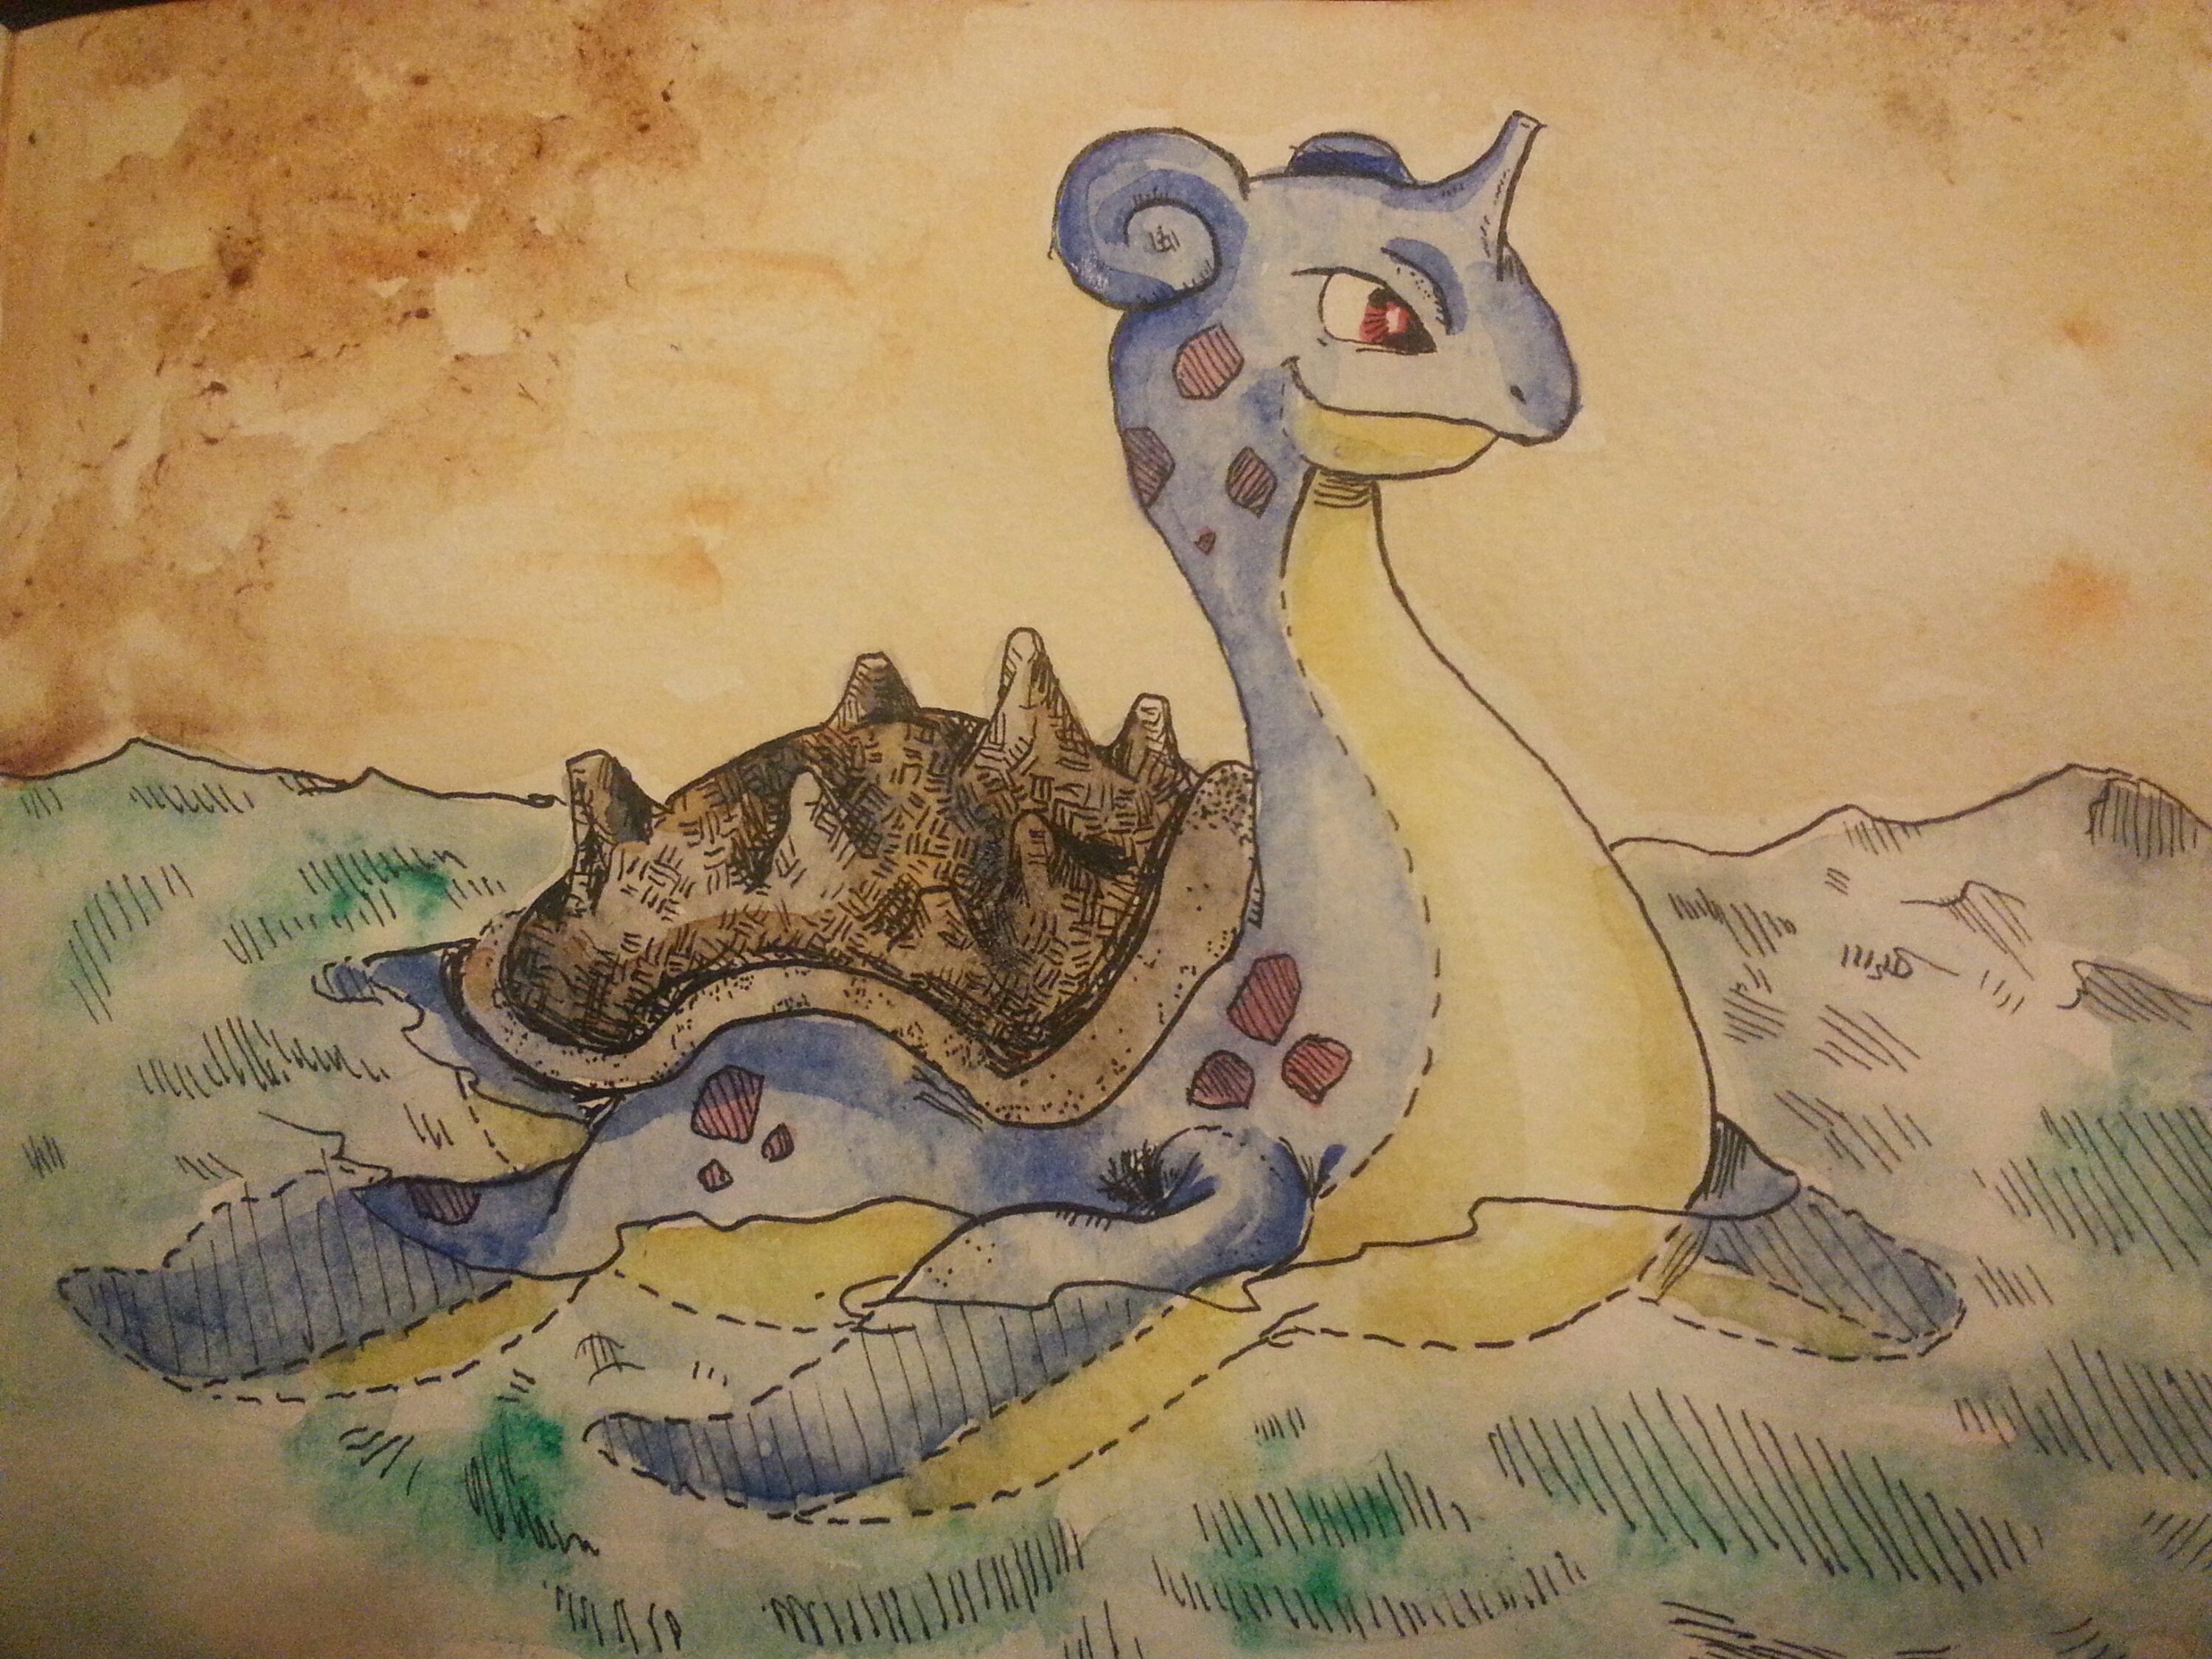 Inktober 2017 – Day 13 – Lapras Friday